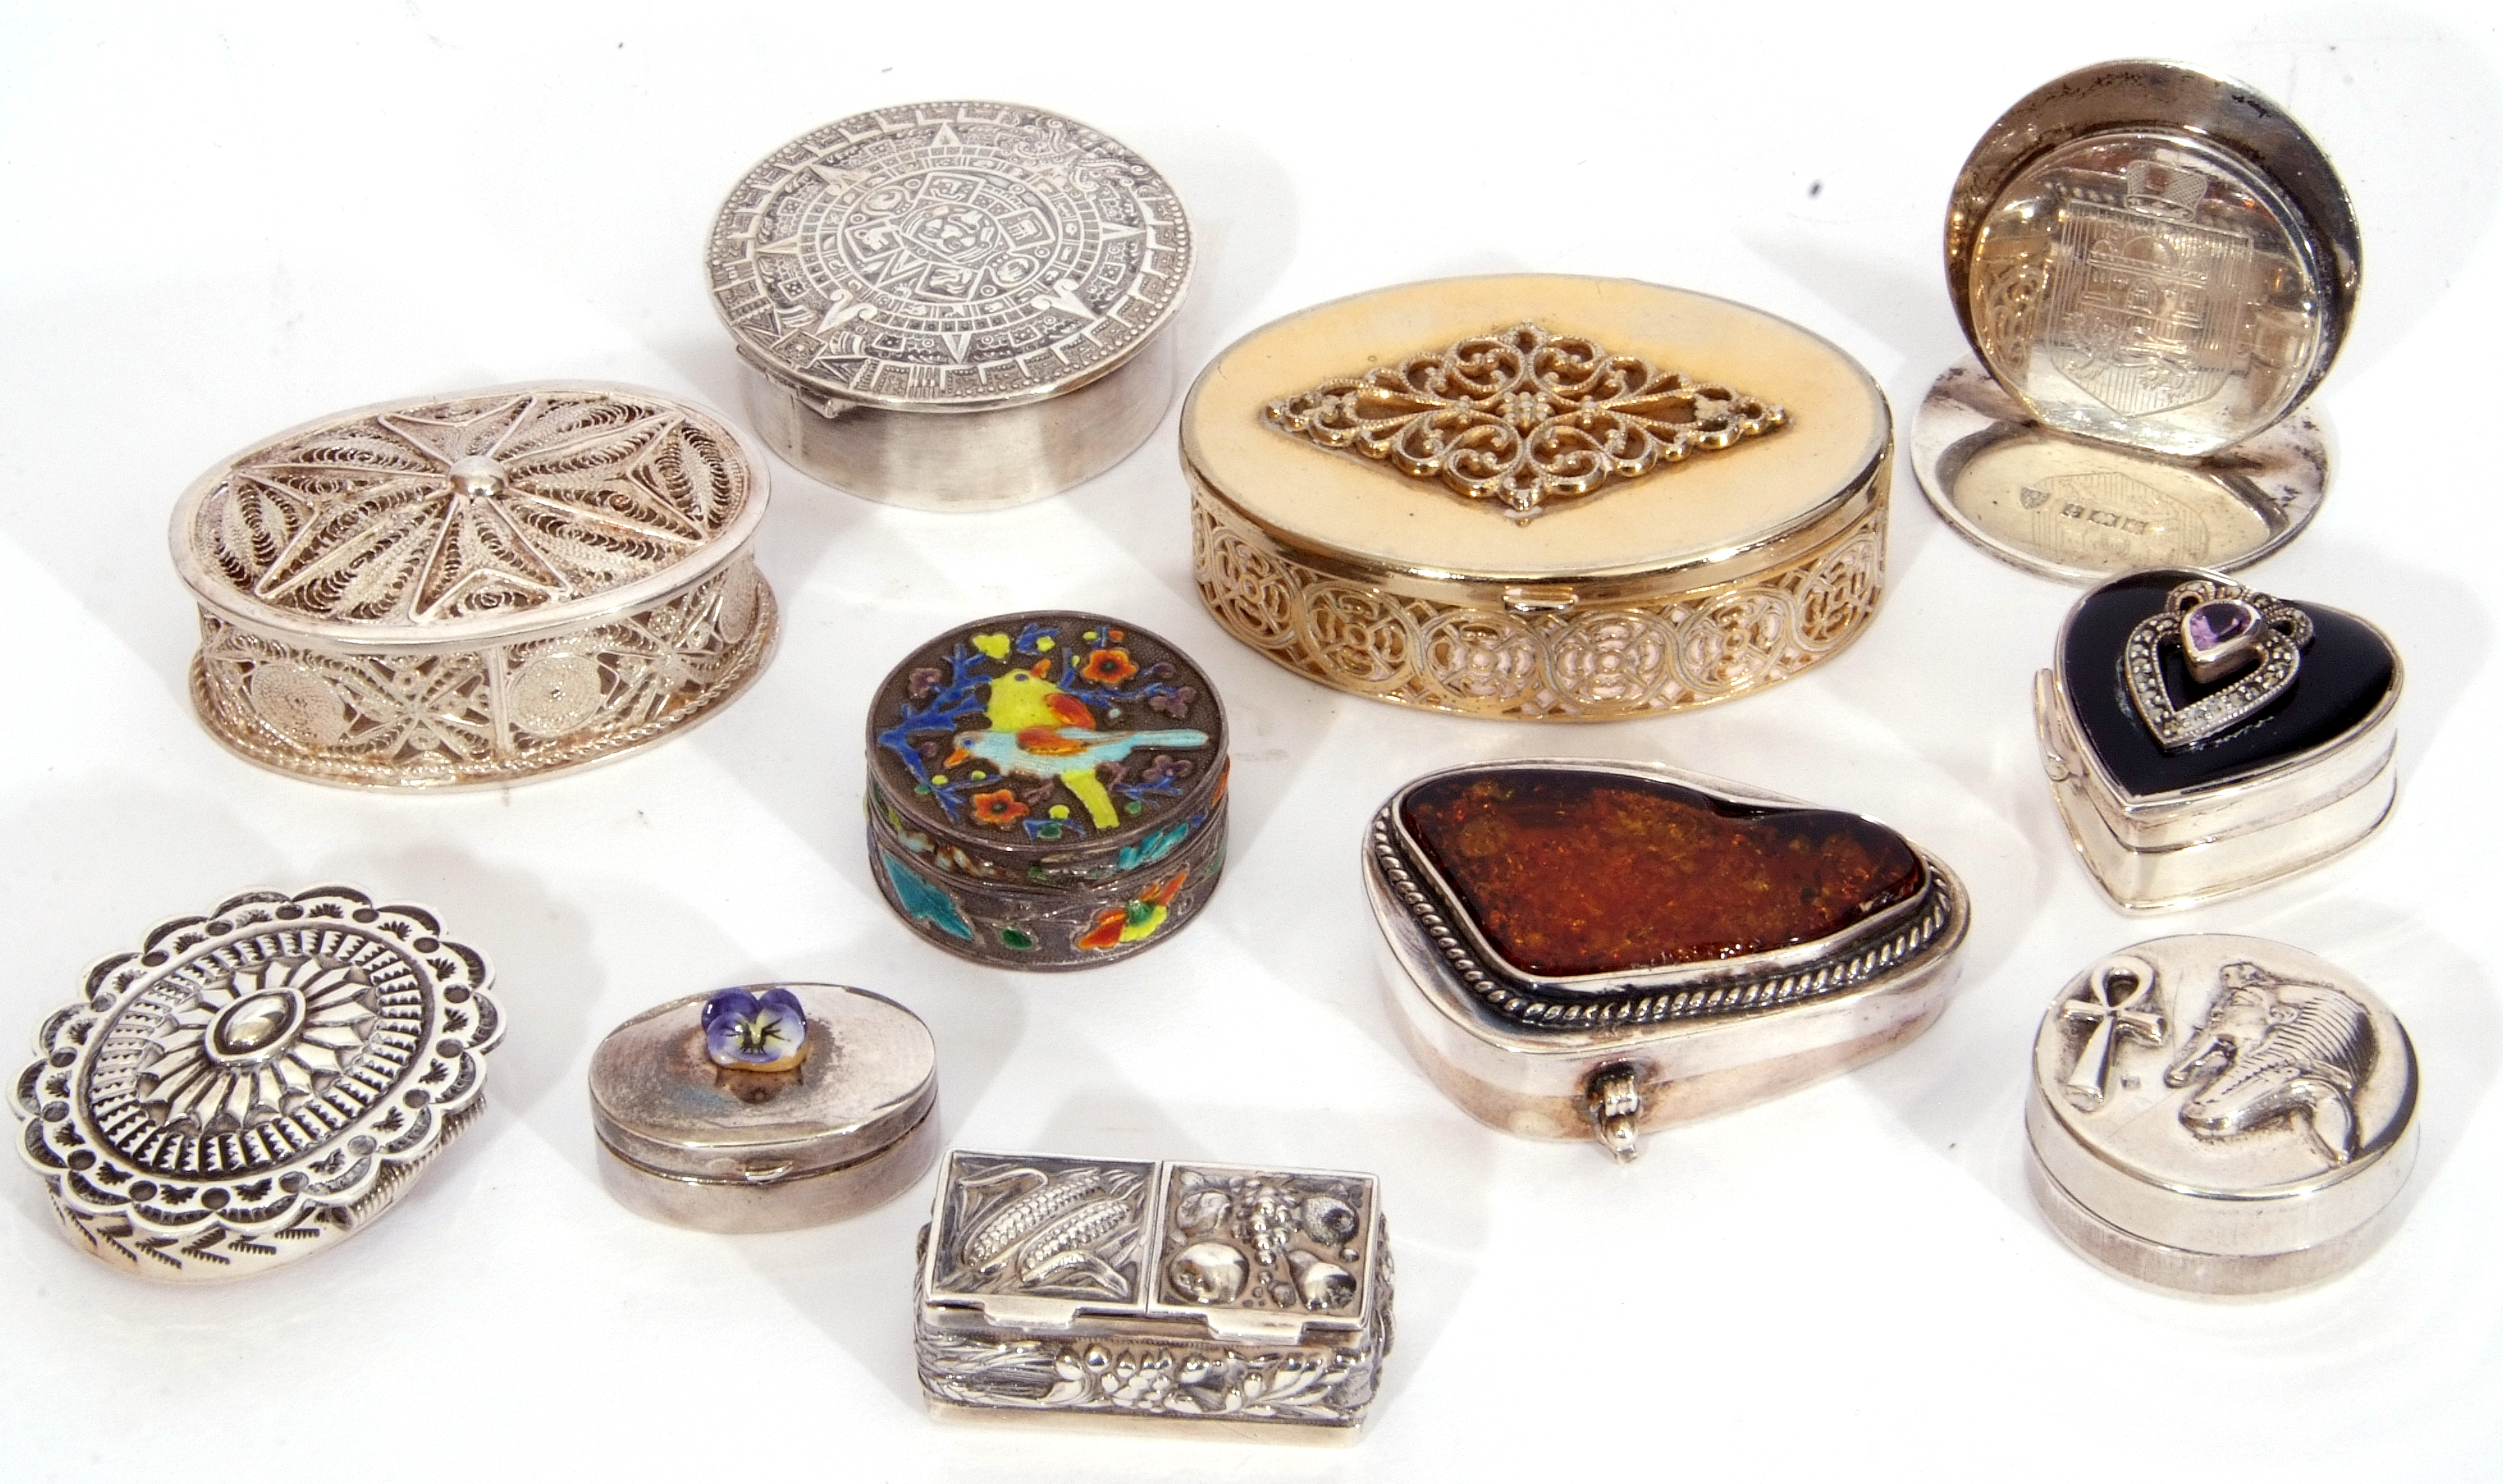 Collection of nine mainly silver/white metal decorative boxes and hallmarked silver menu holder, - Image 2 of 4